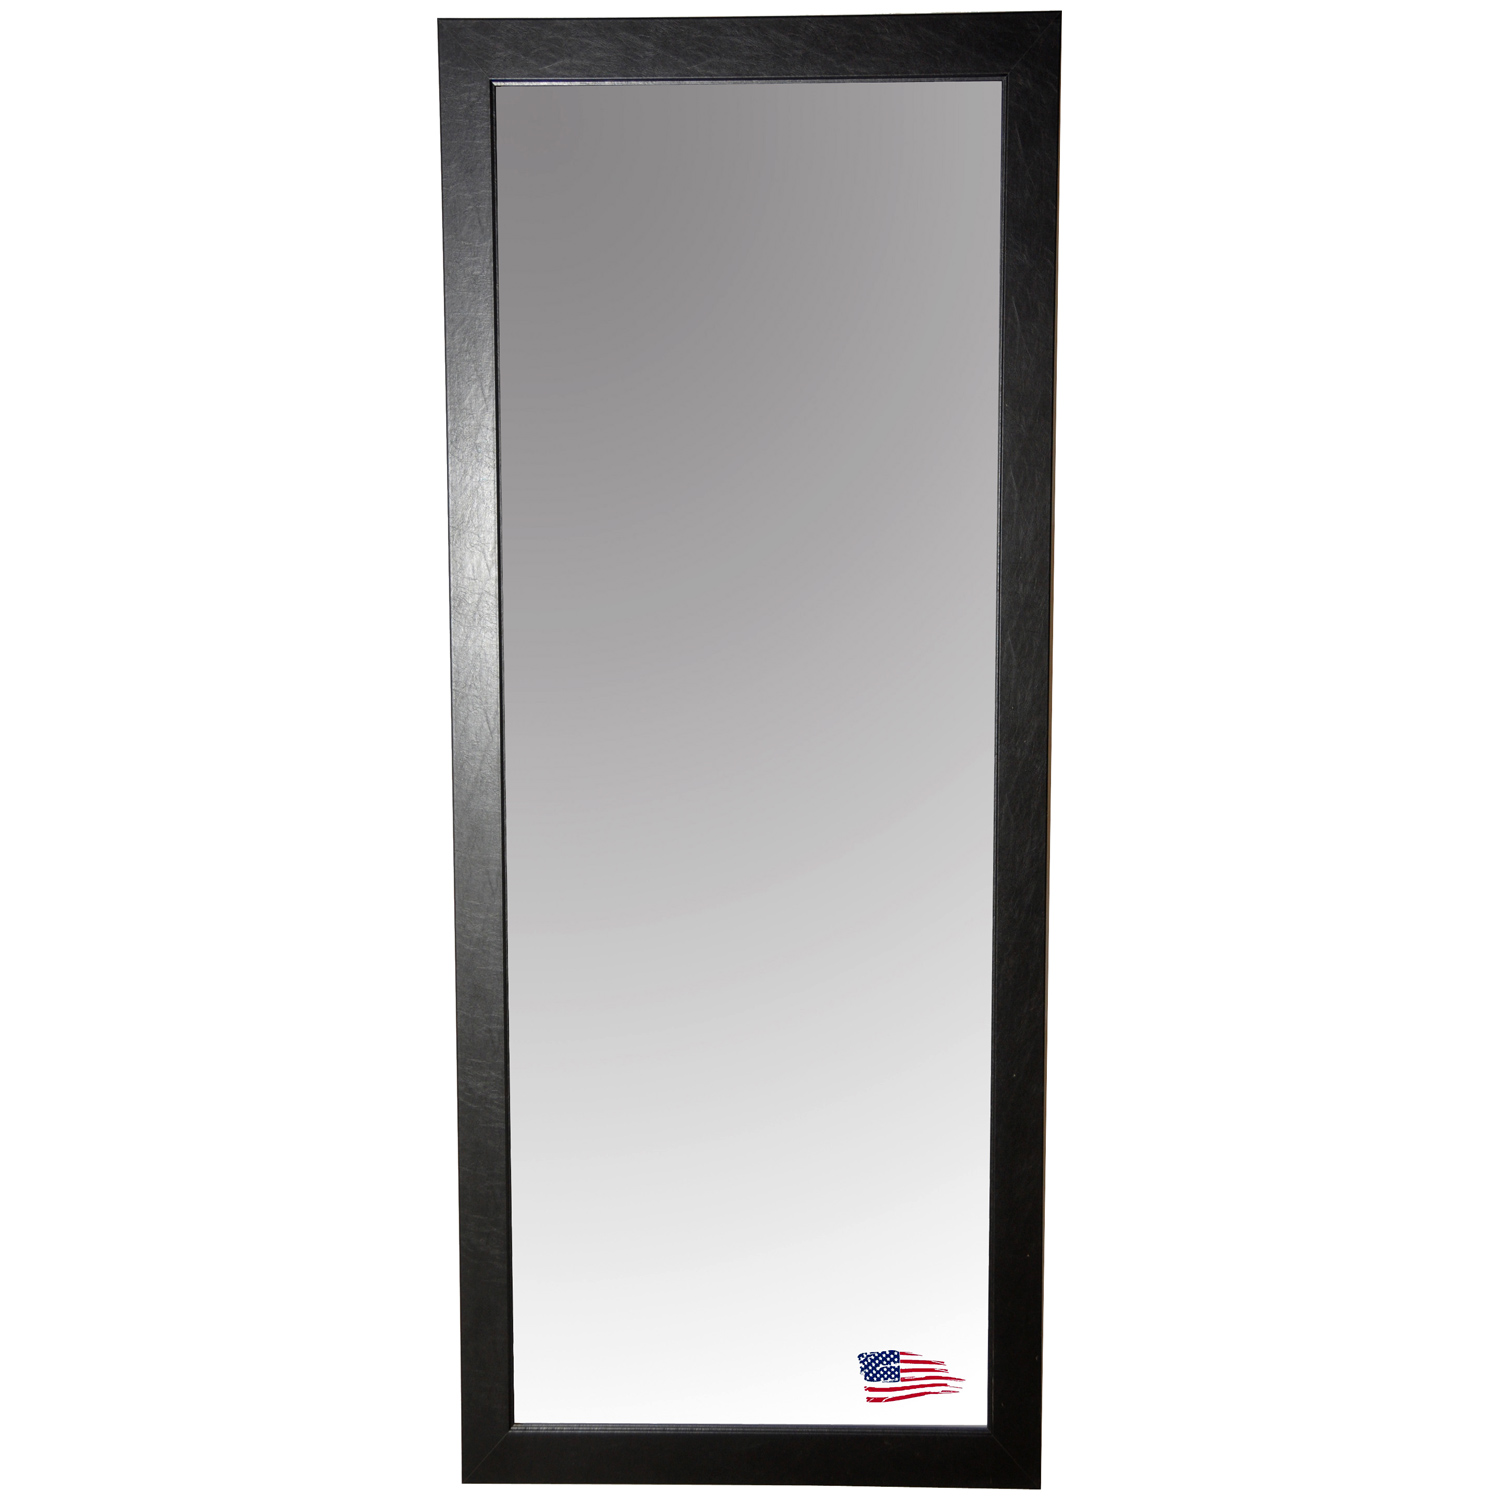 Rectangular Mirror - Black Leather Frame - RAY-R012T